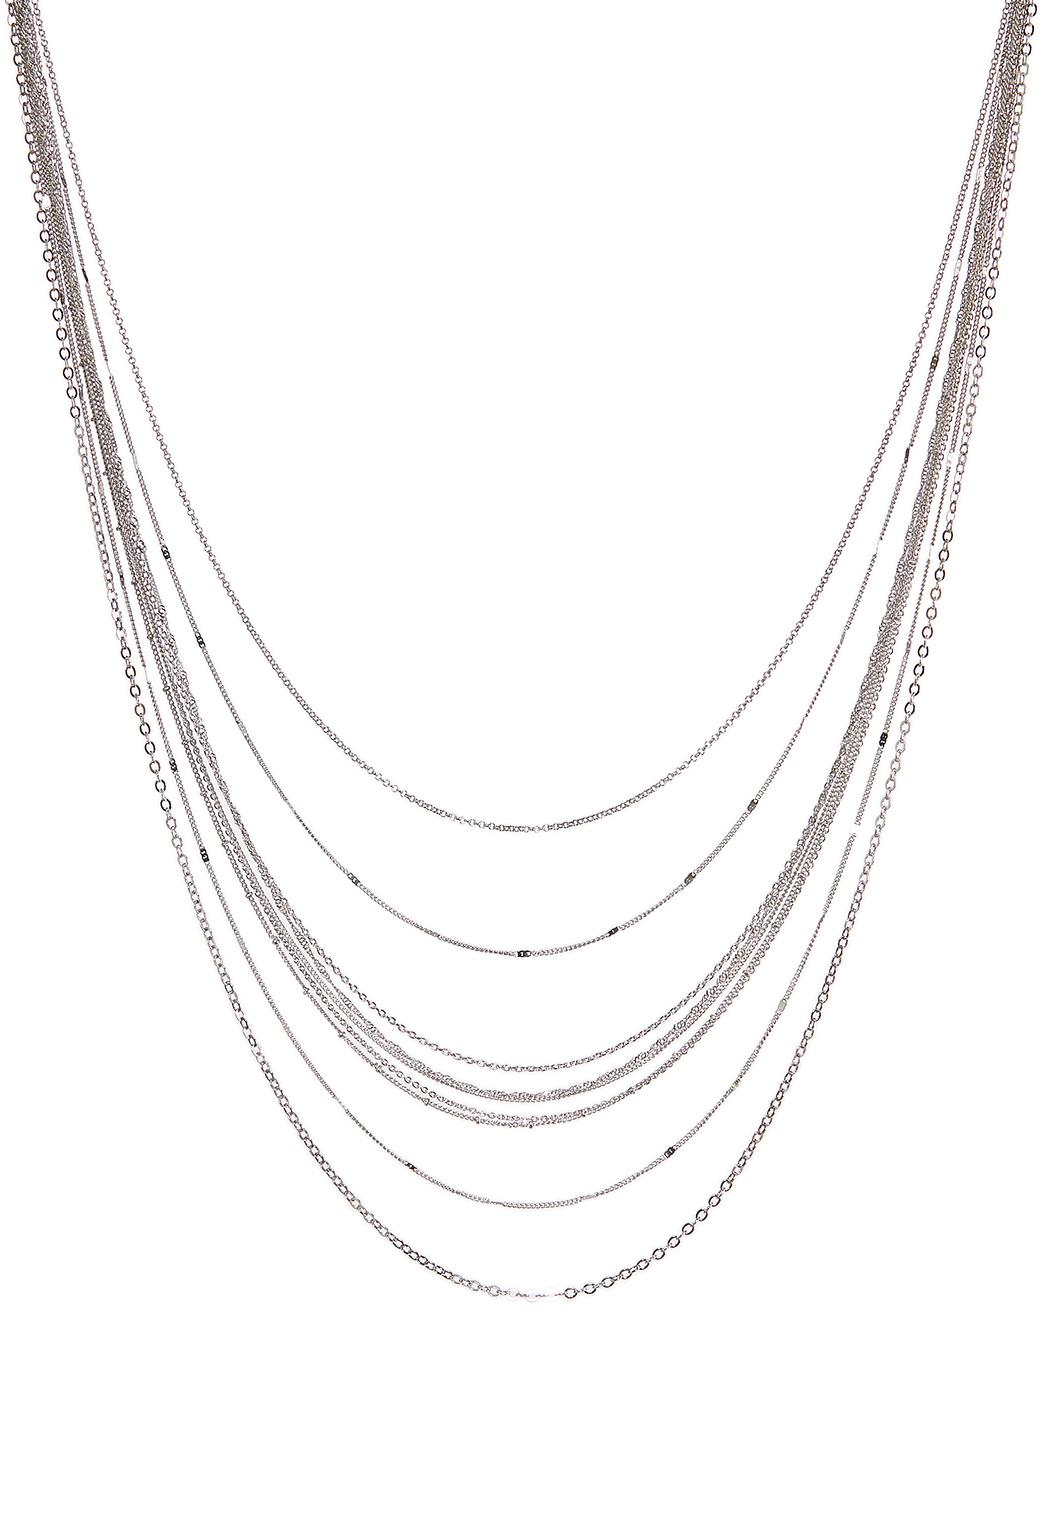 Delicate Layered Chain Necklace